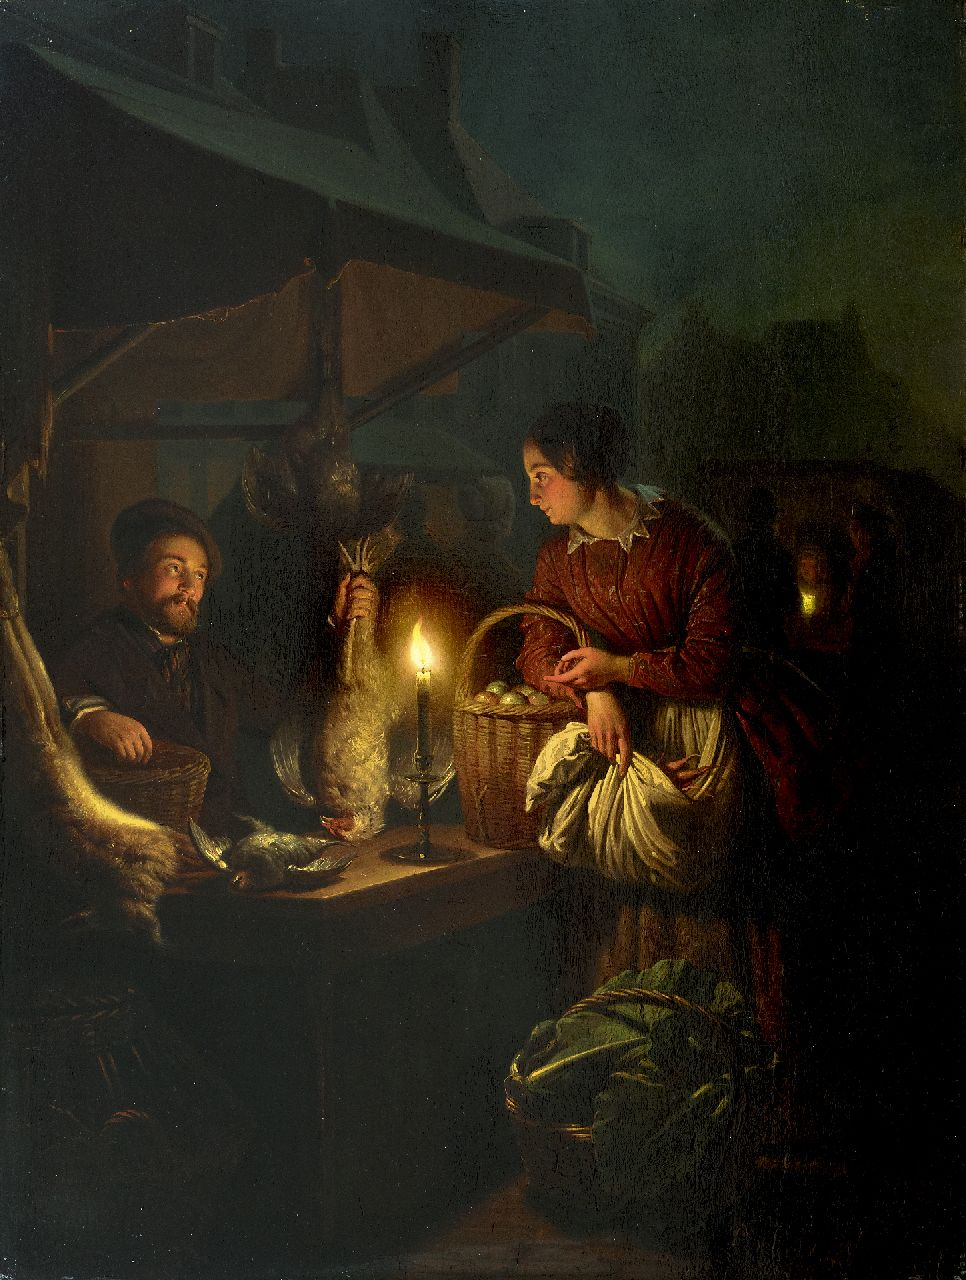 Schendel P. van | Petrus van Schendel | Paintings offered for sale | The game and poultry seller, by candle light, oil on panel 57.0 x 42.8 cm, signed l.r. and dated 1856